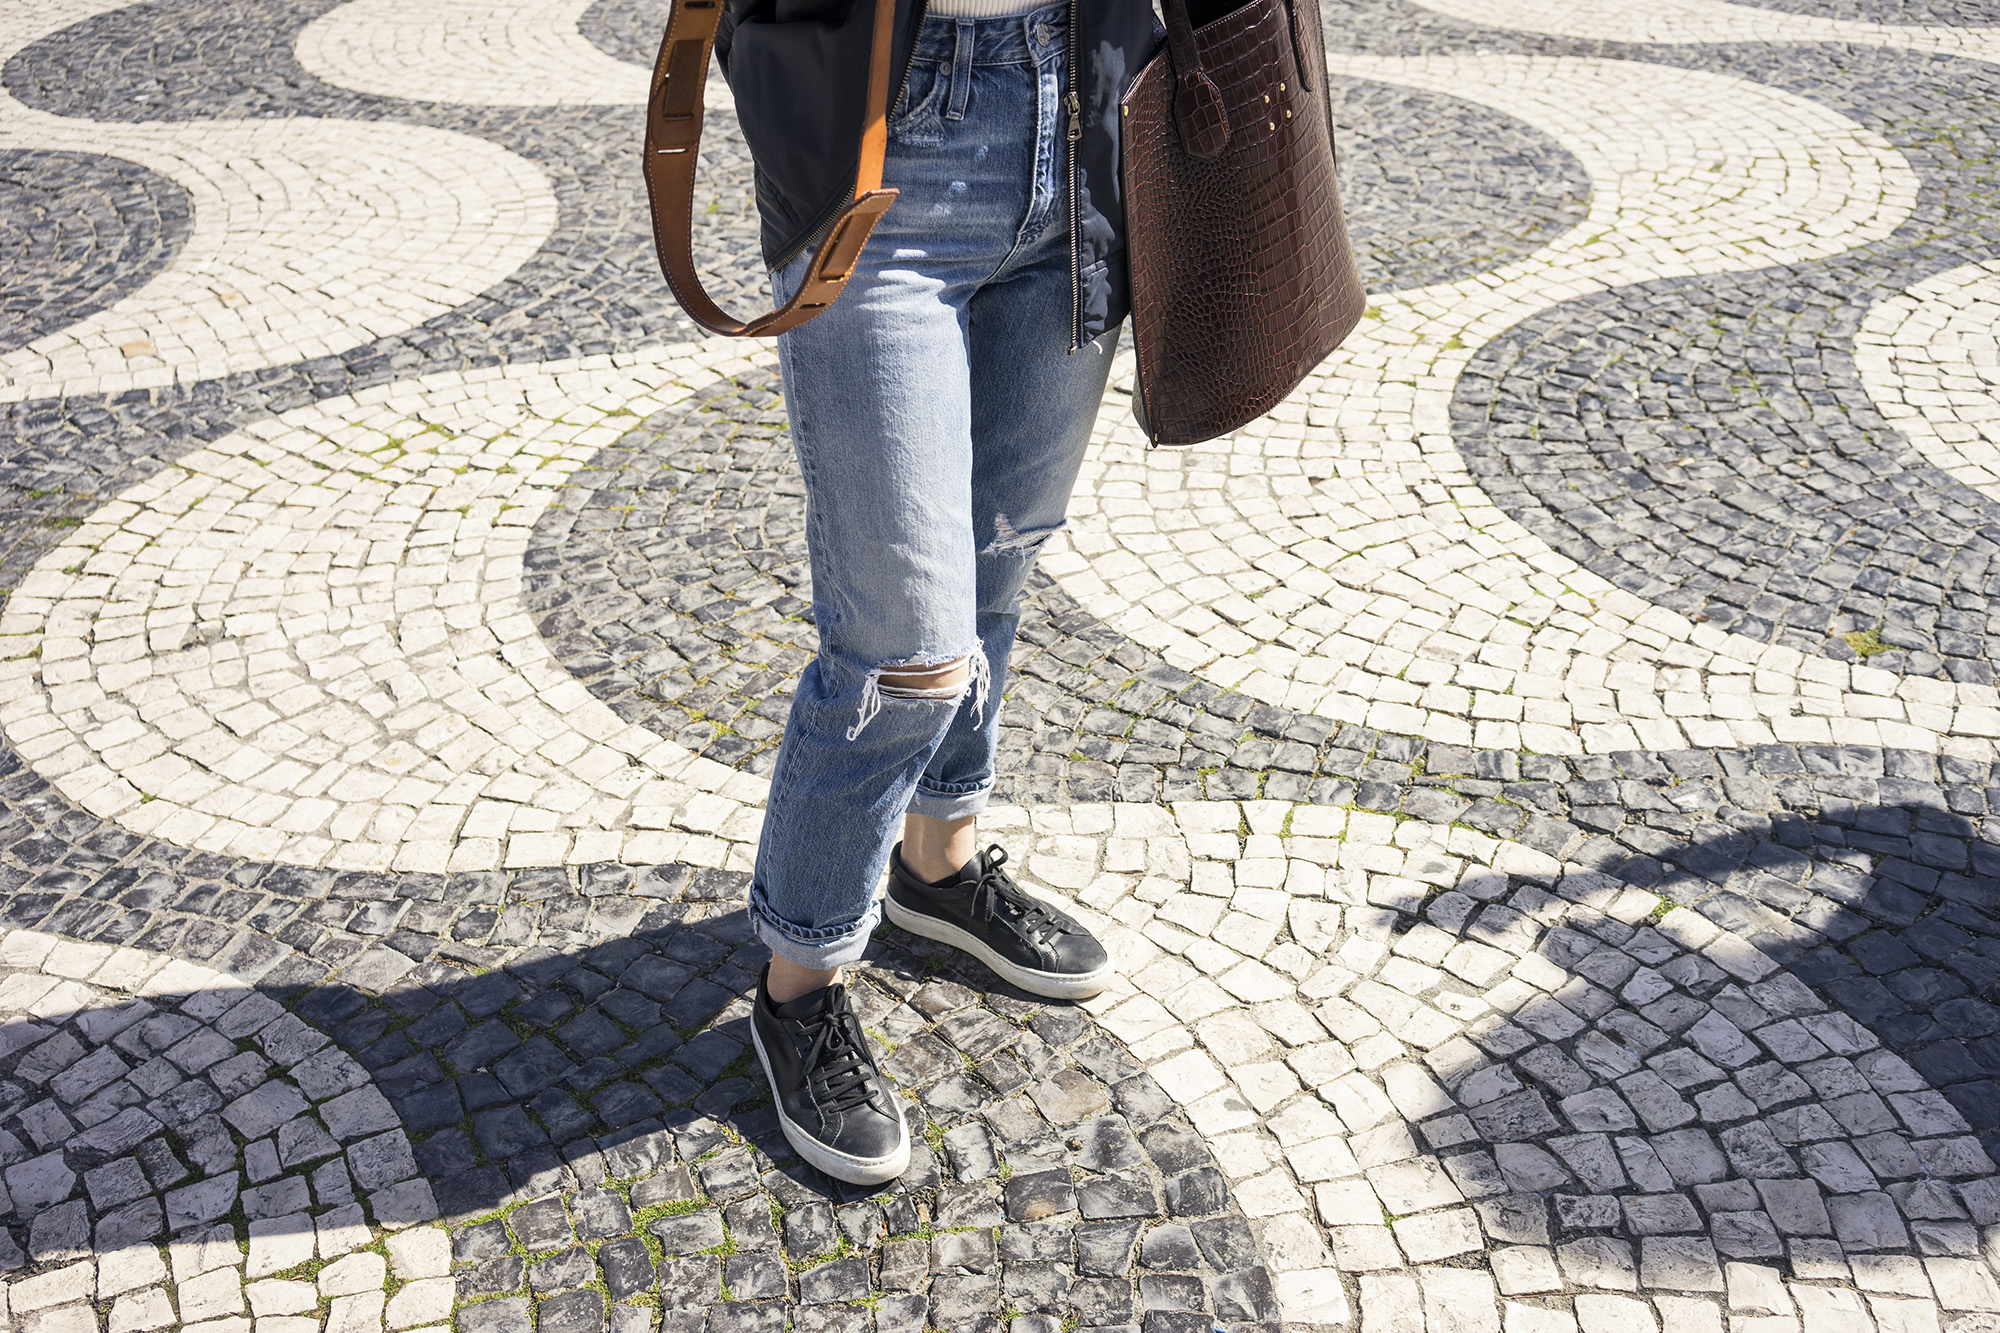 Alice is wearing  AG Jeans  //  Common Projects sneakers //  Mini Aubock bag from Trademark